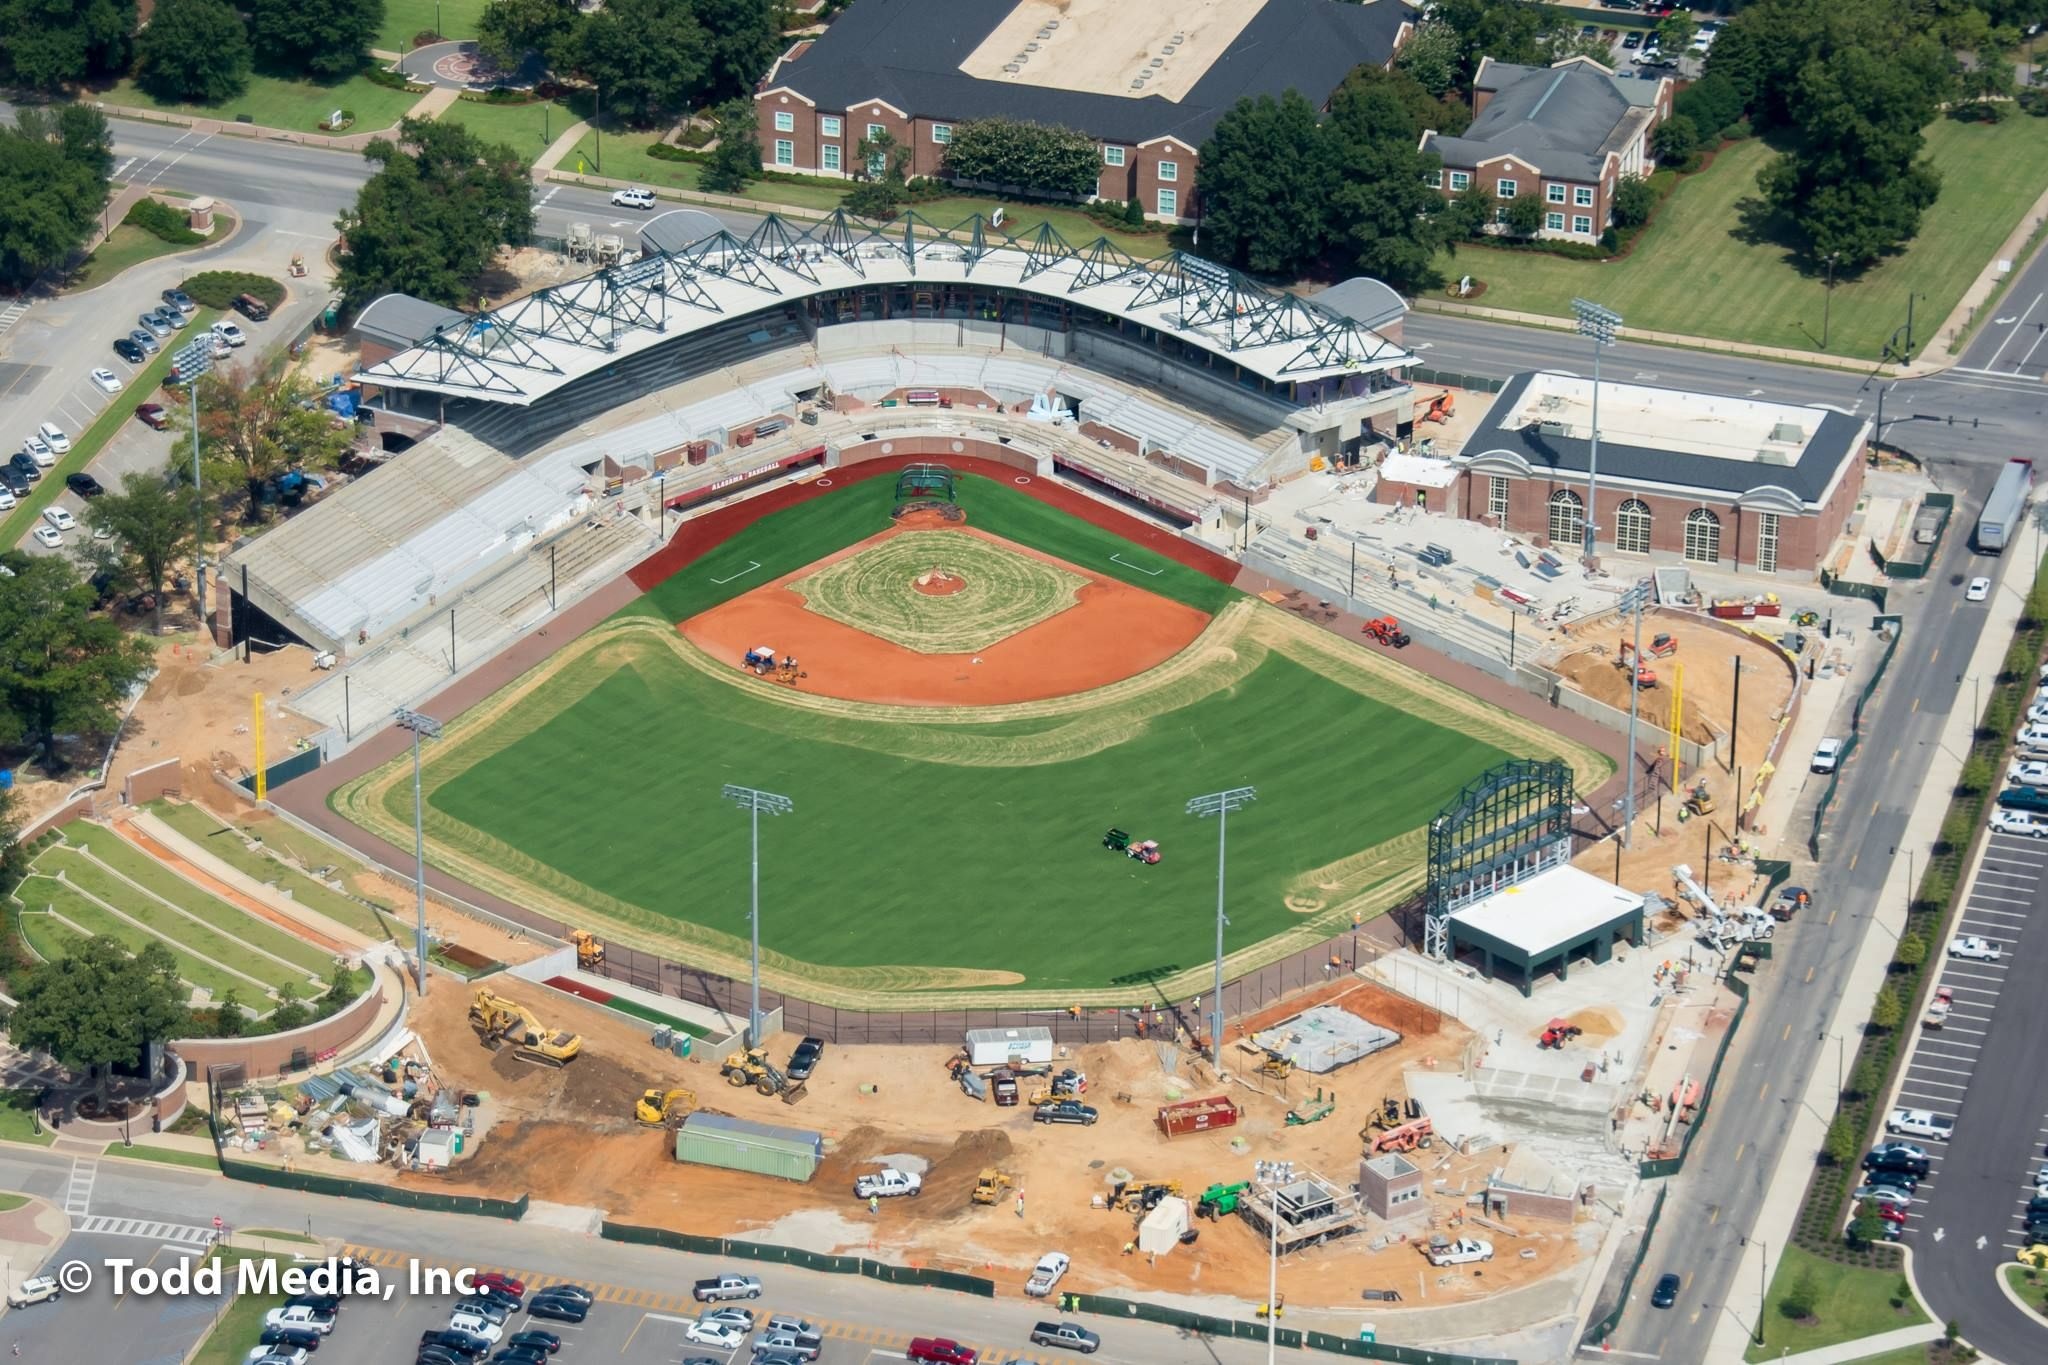 Sewell thomas stadium at the university of alabama being remodeled